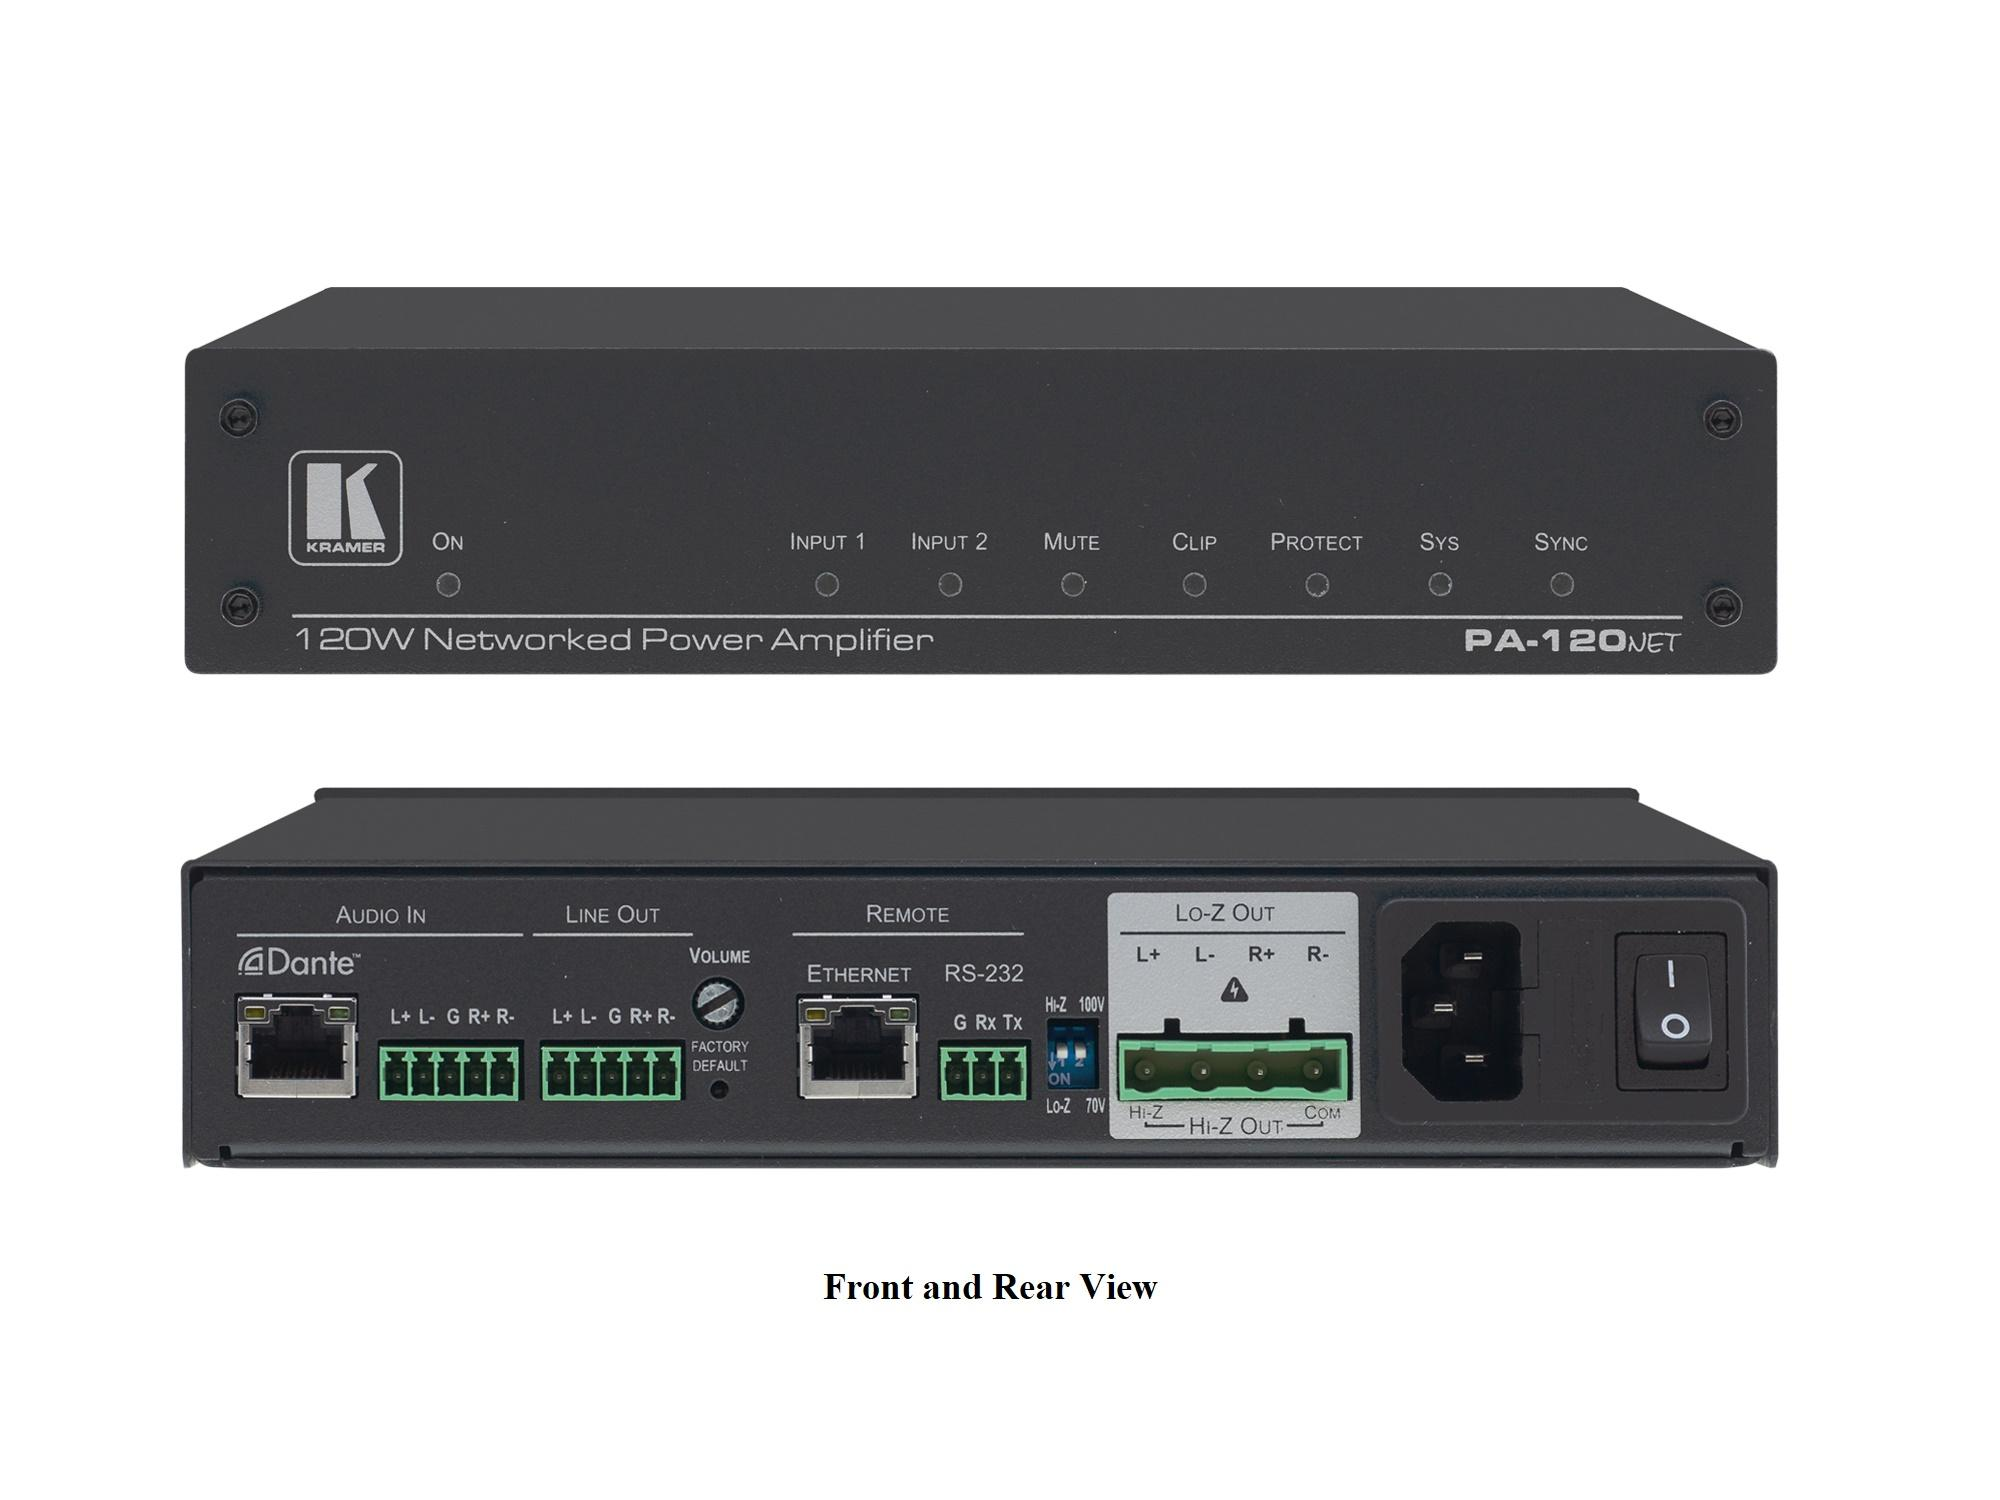 PA-120Net 120W Networked Power Amplifier by Kramer